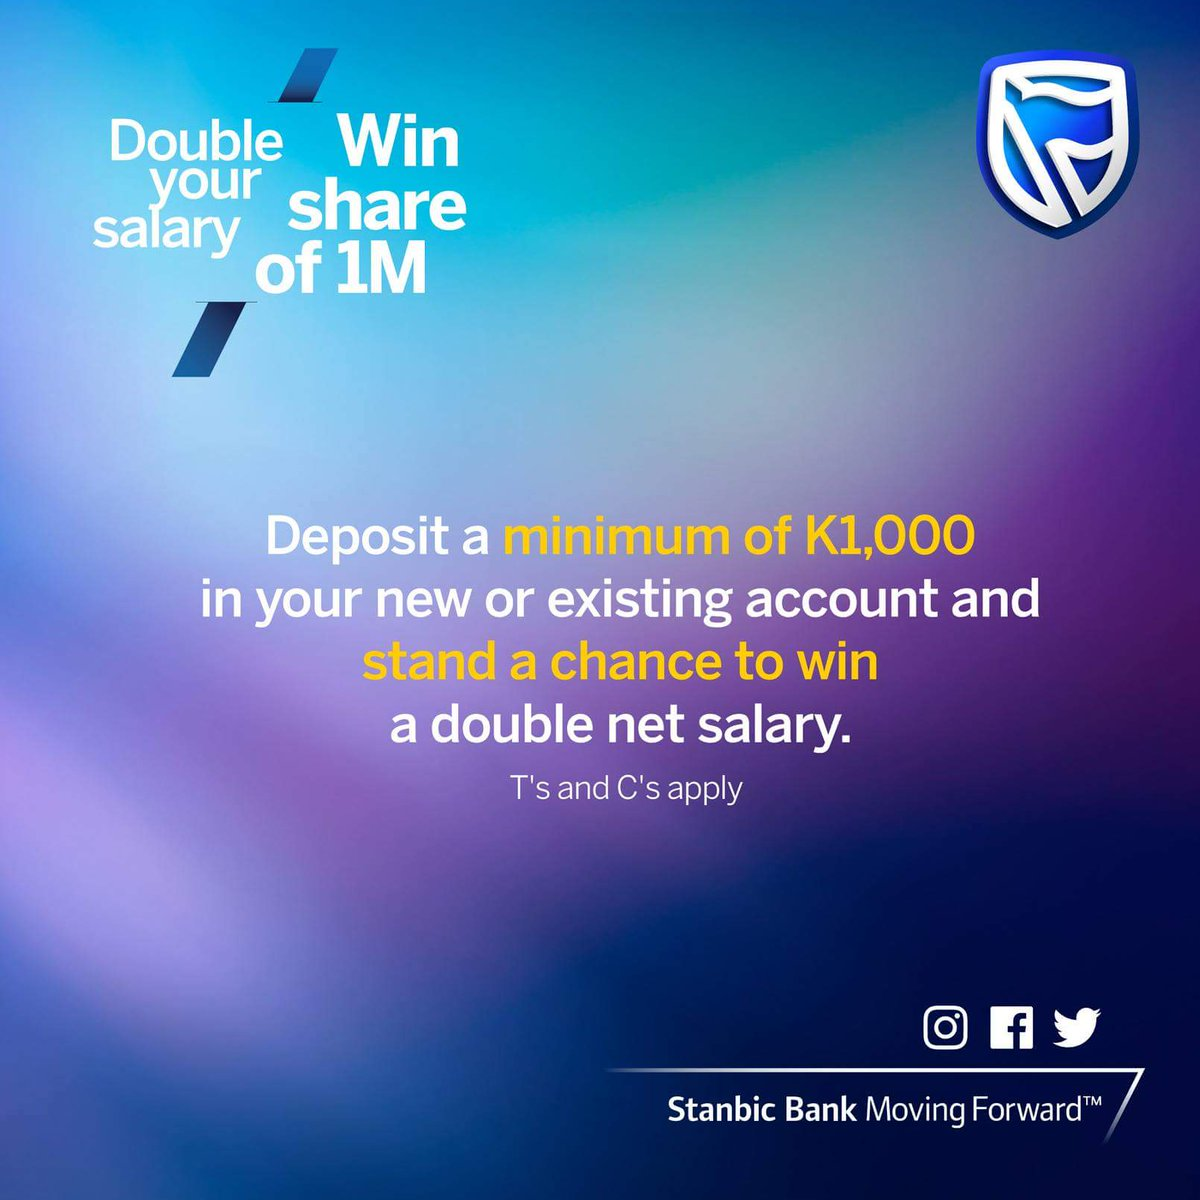 Stanbic is just a predatory bank